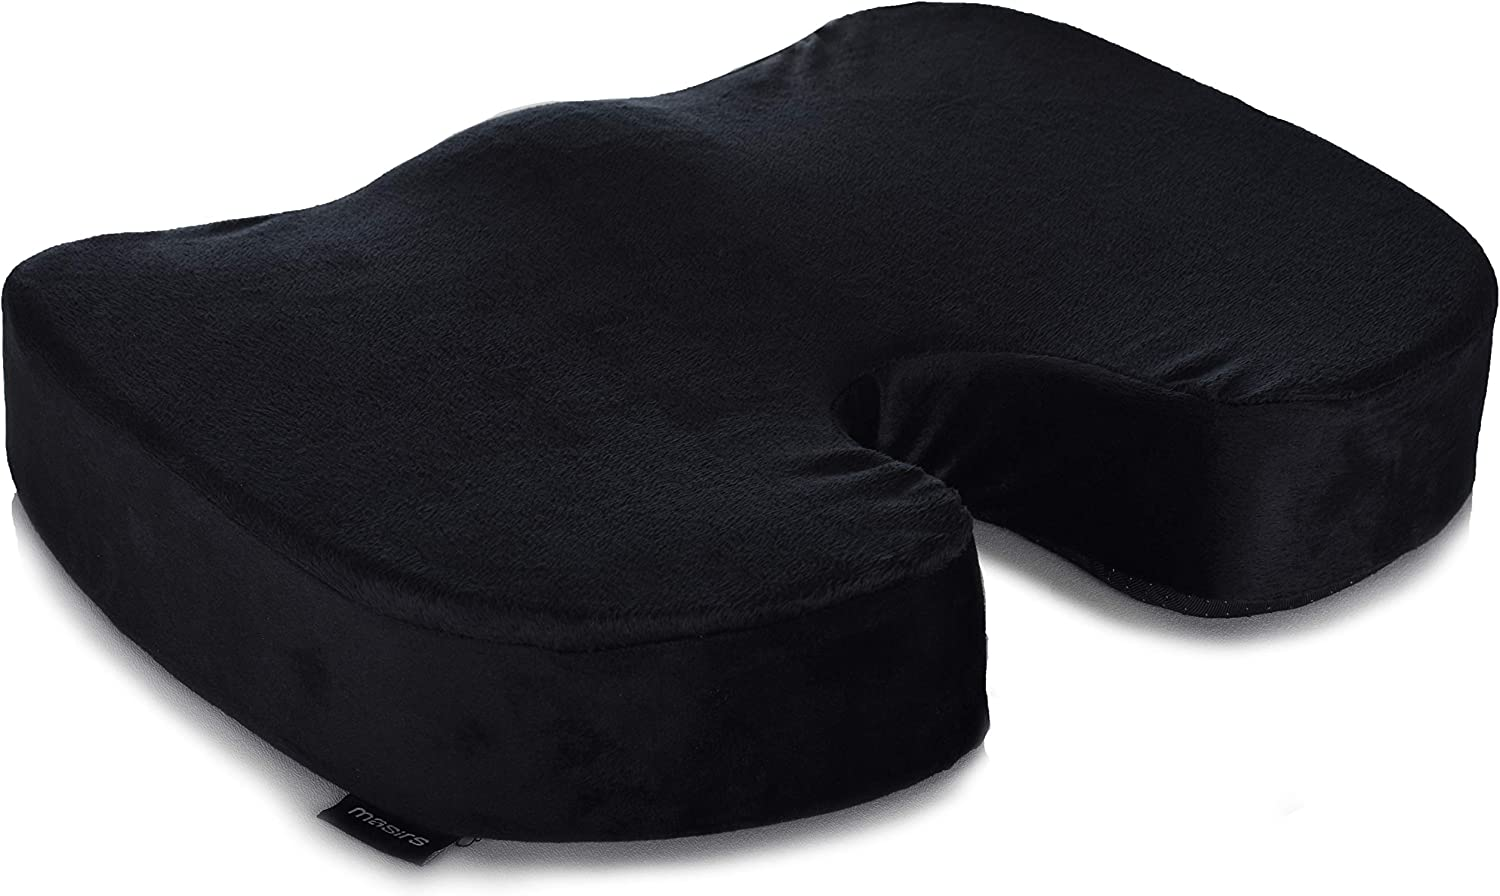 Memory Foam Seat Cushion – Comfort Orthopedic Design to Relieve Sciatica, Coccyx and Tailbone Back Pain. Conforms to Body Shape and Promotes Healthy Posture. Perfect Gel Cushion for Office Desk Chair.